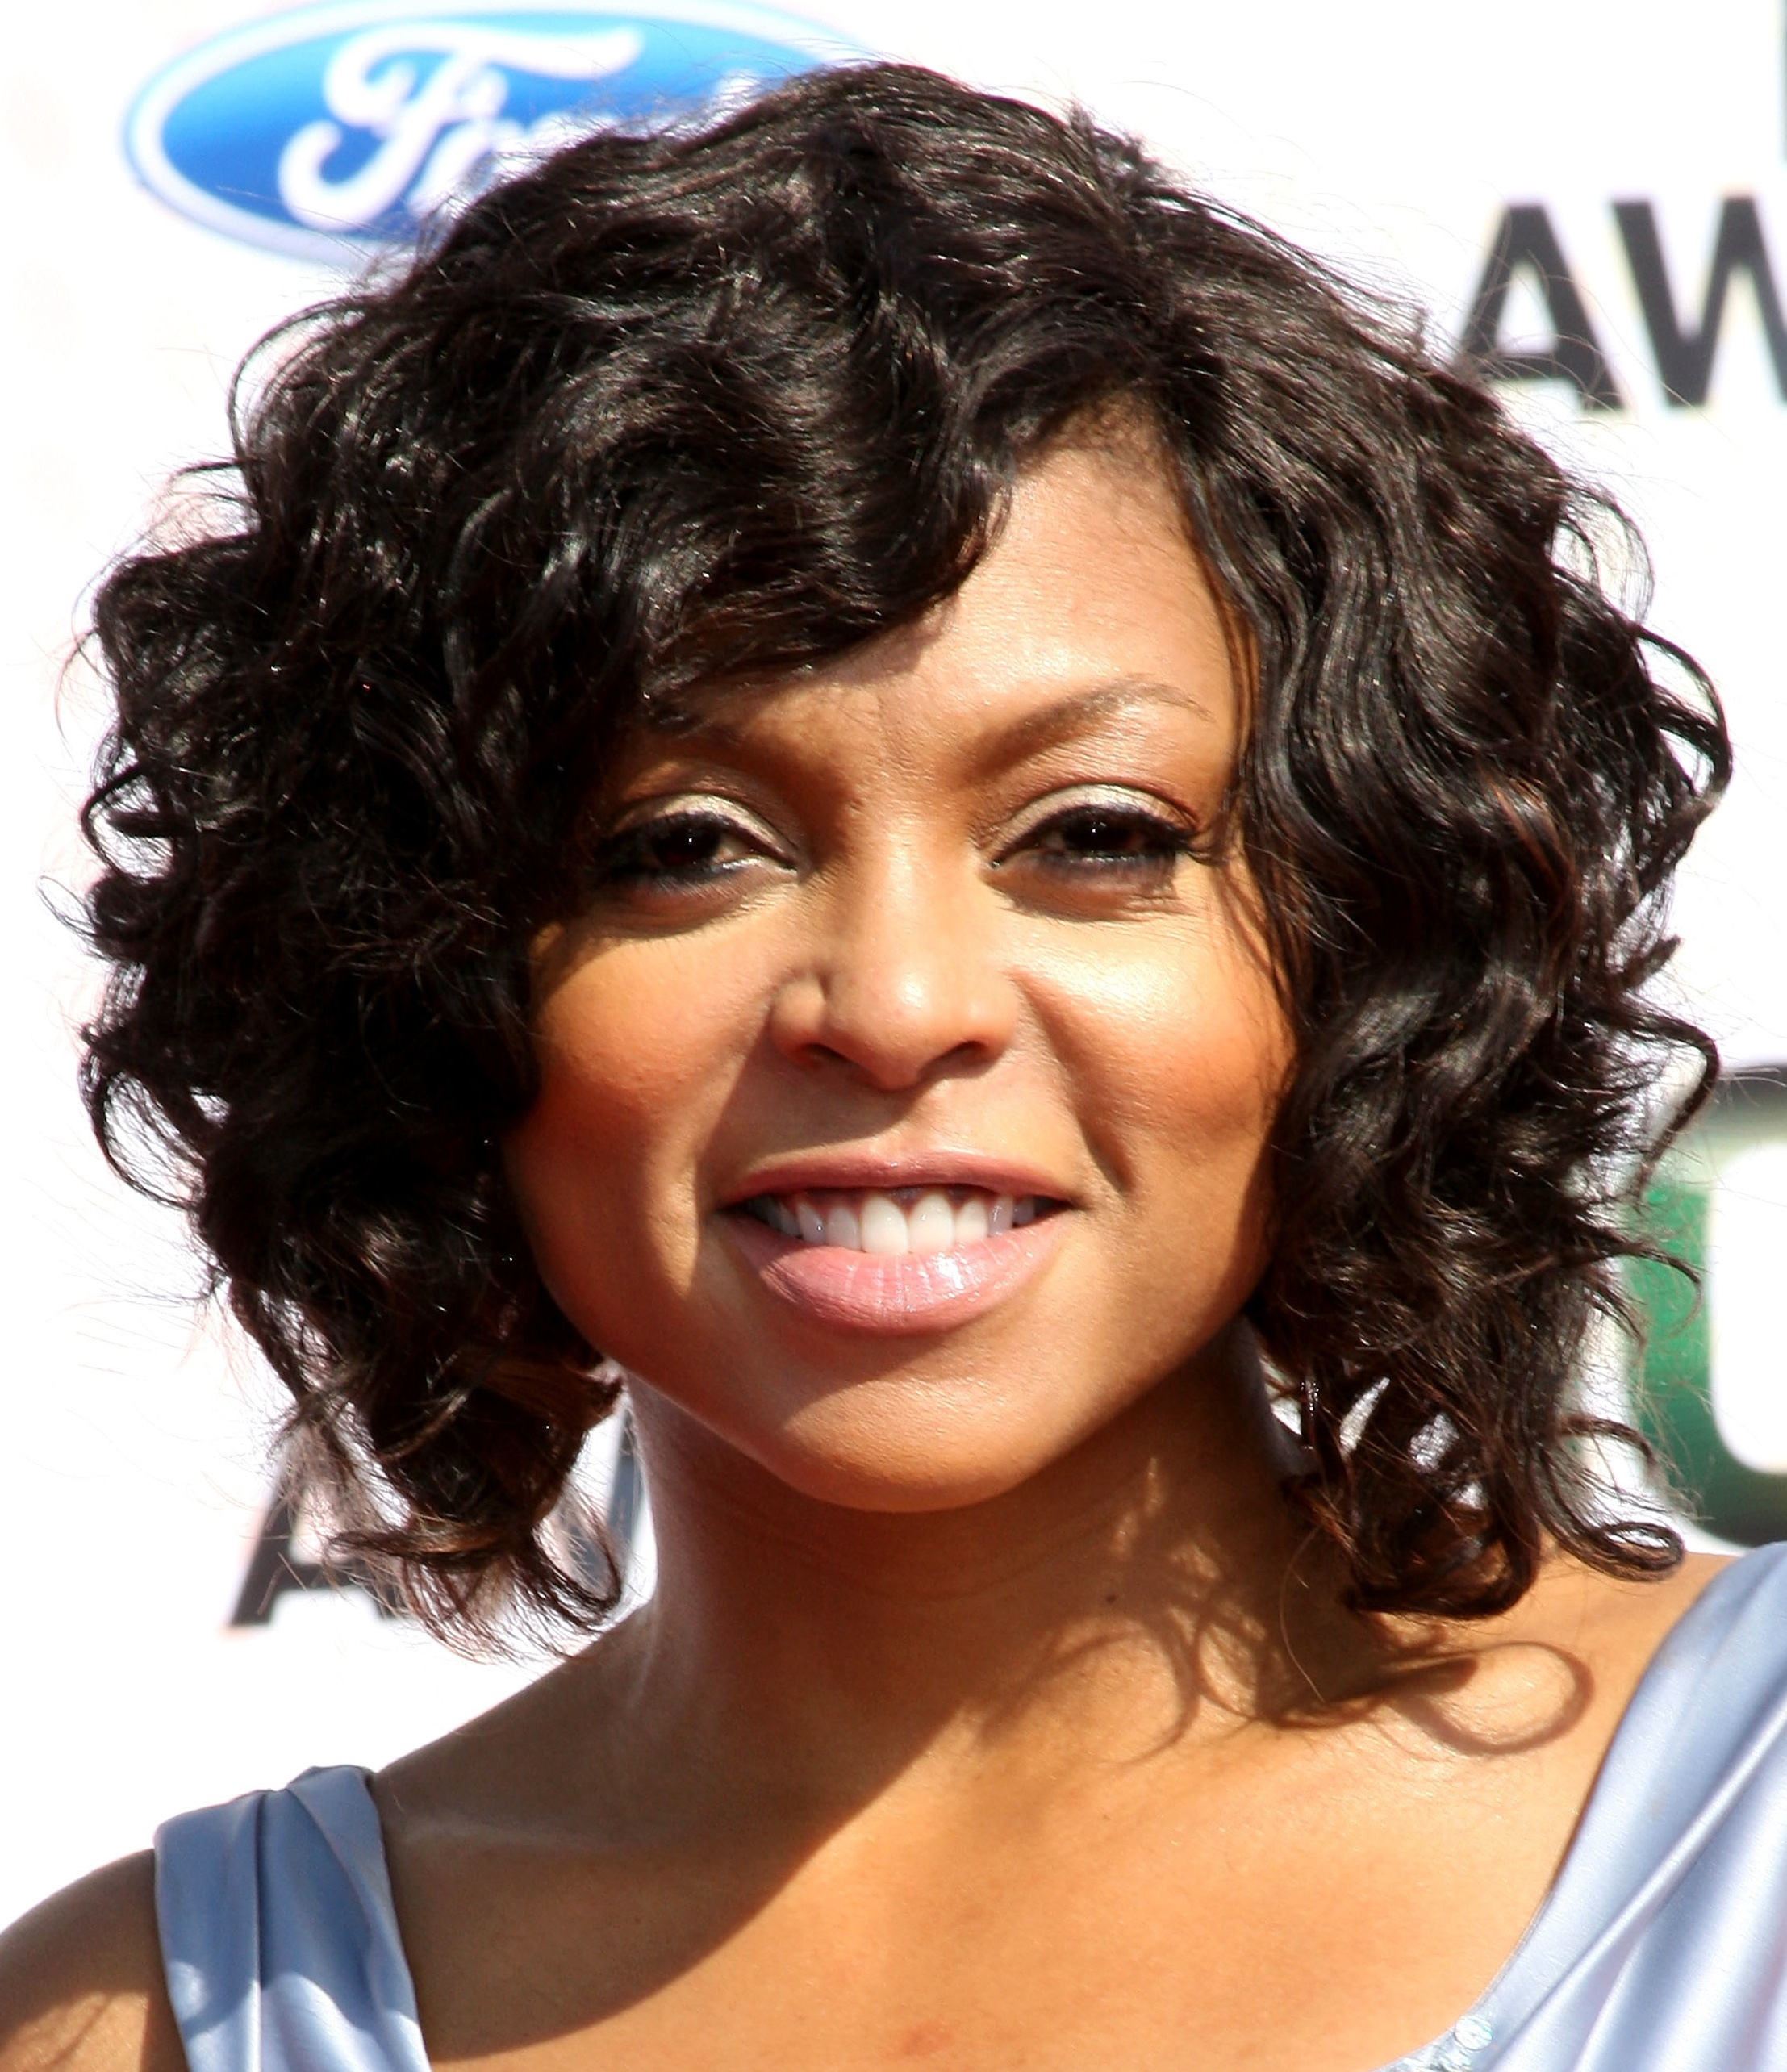 Pleasant Top 25 Short Curly Hairstyles For Black Women Short Hairstyles For Black Women Fulllsitofus